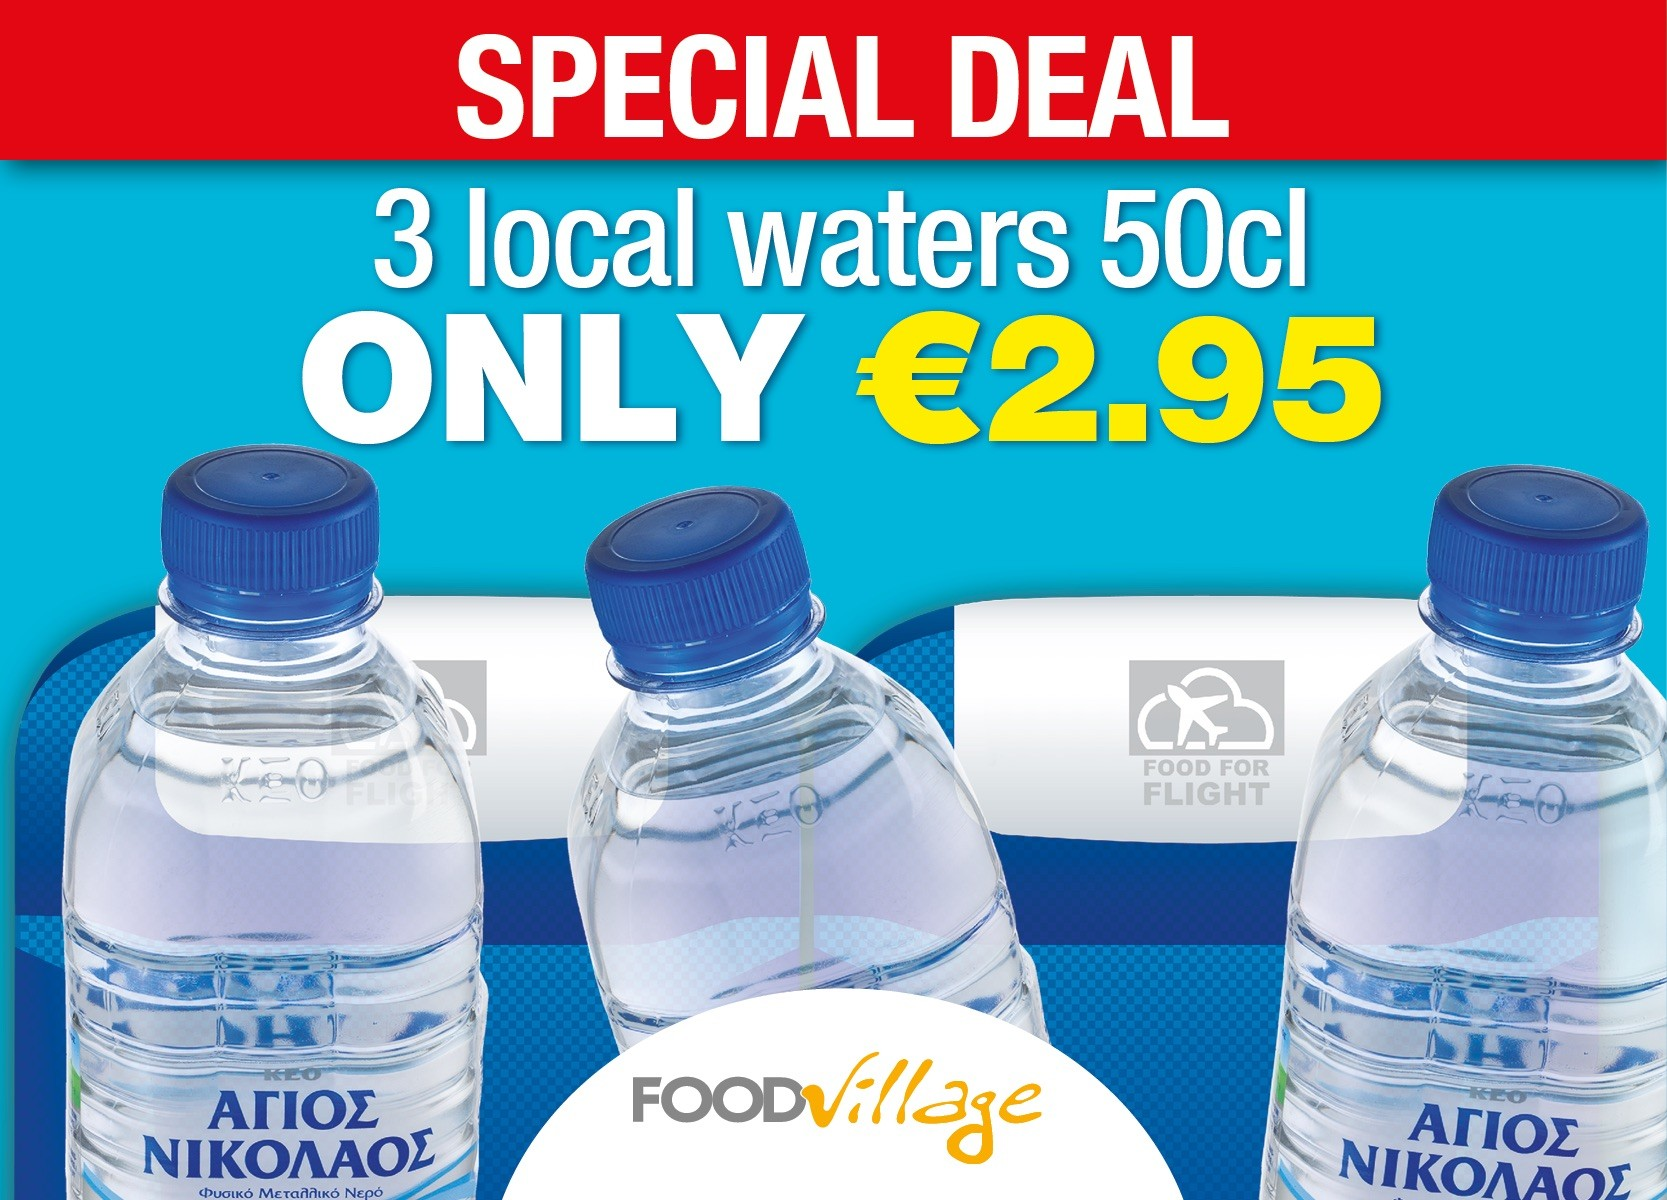 Special deal. 3 local waters 50cl for only €2.95